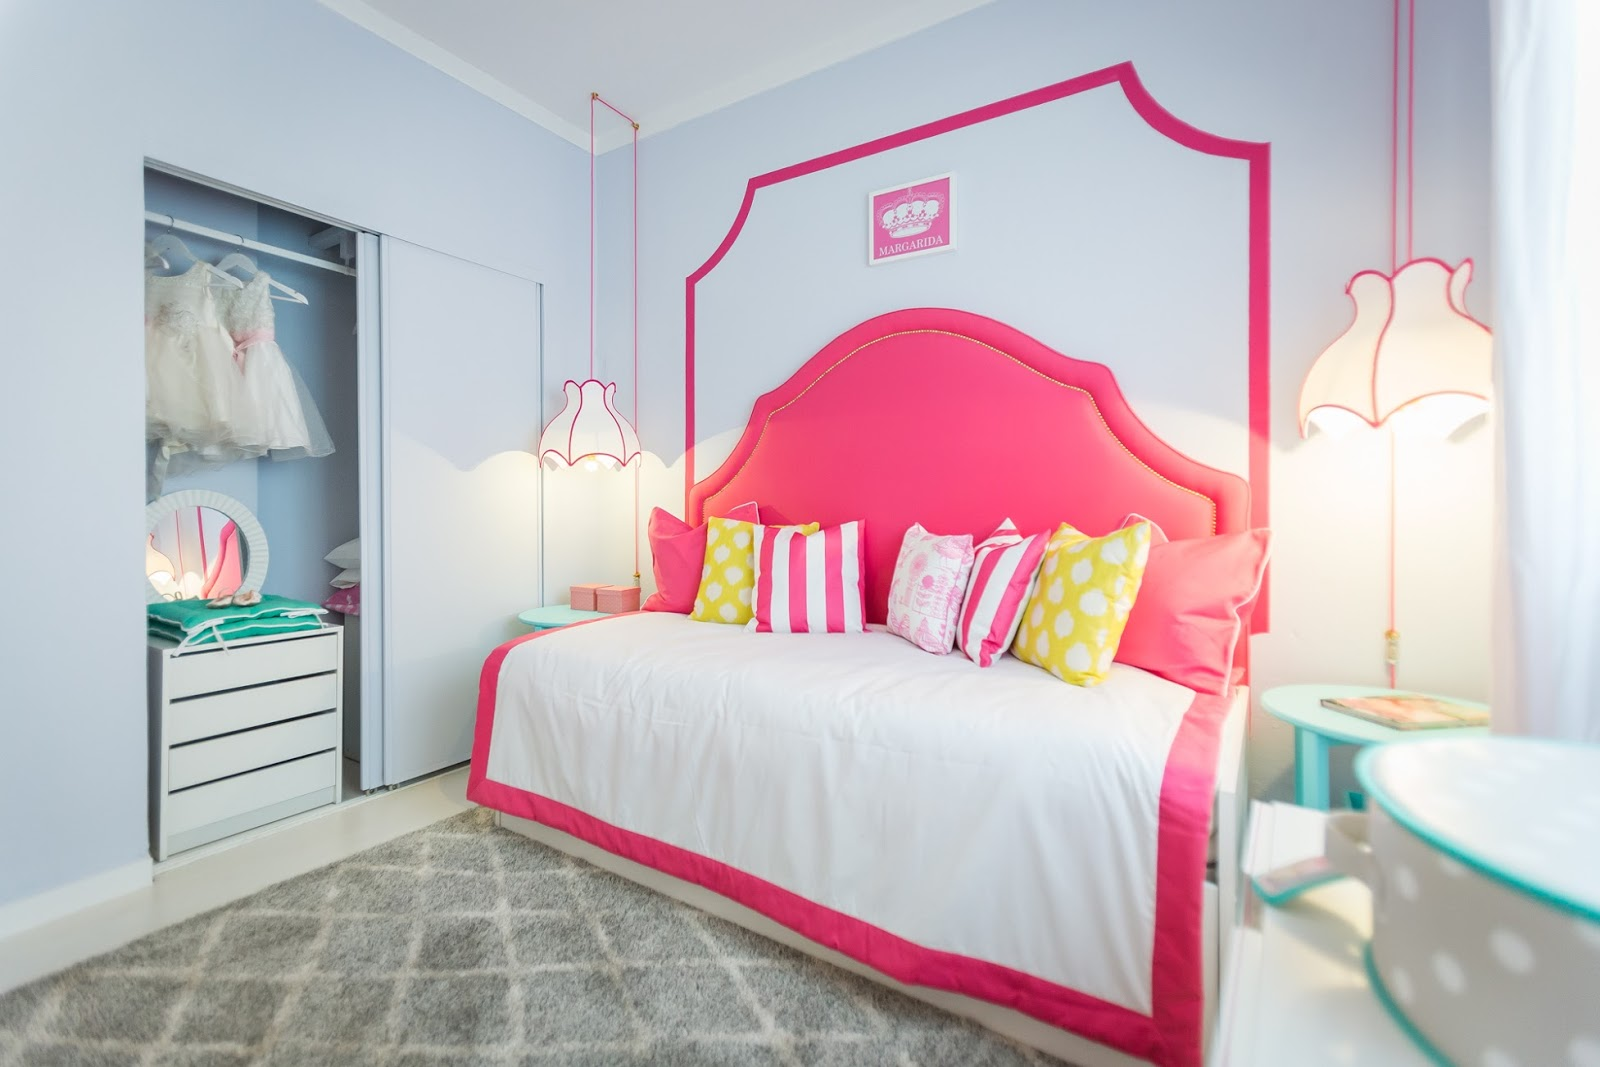 Princess Tiana Bedroom Decor Pictures Of Bedrooms For Girls Princess Tiana Bedroom 3 Bedroom